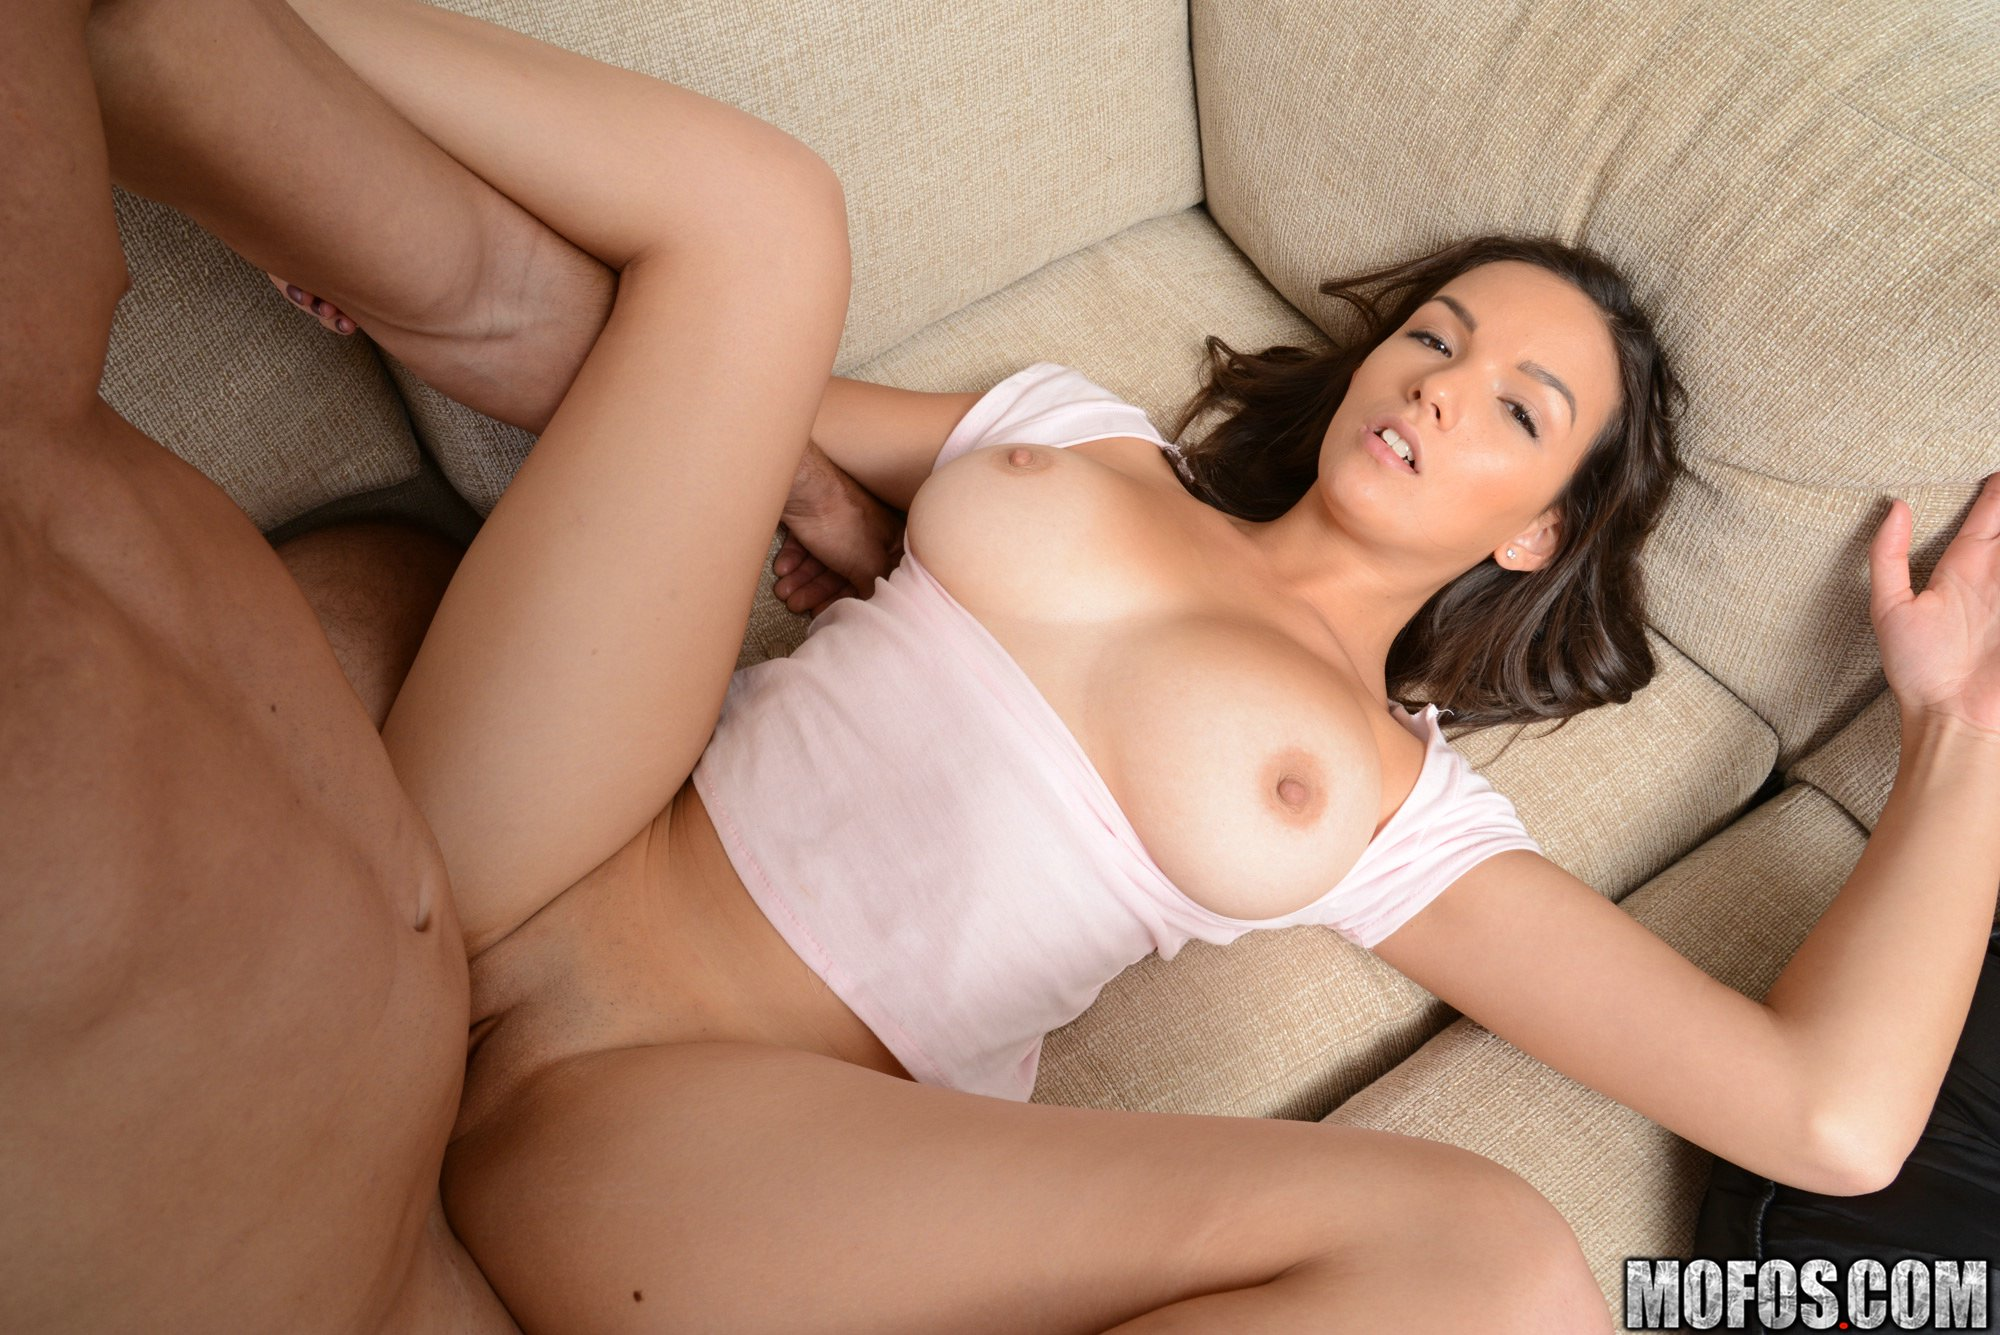 Shae Summers Pictures. Babe Rating = 9.51/10